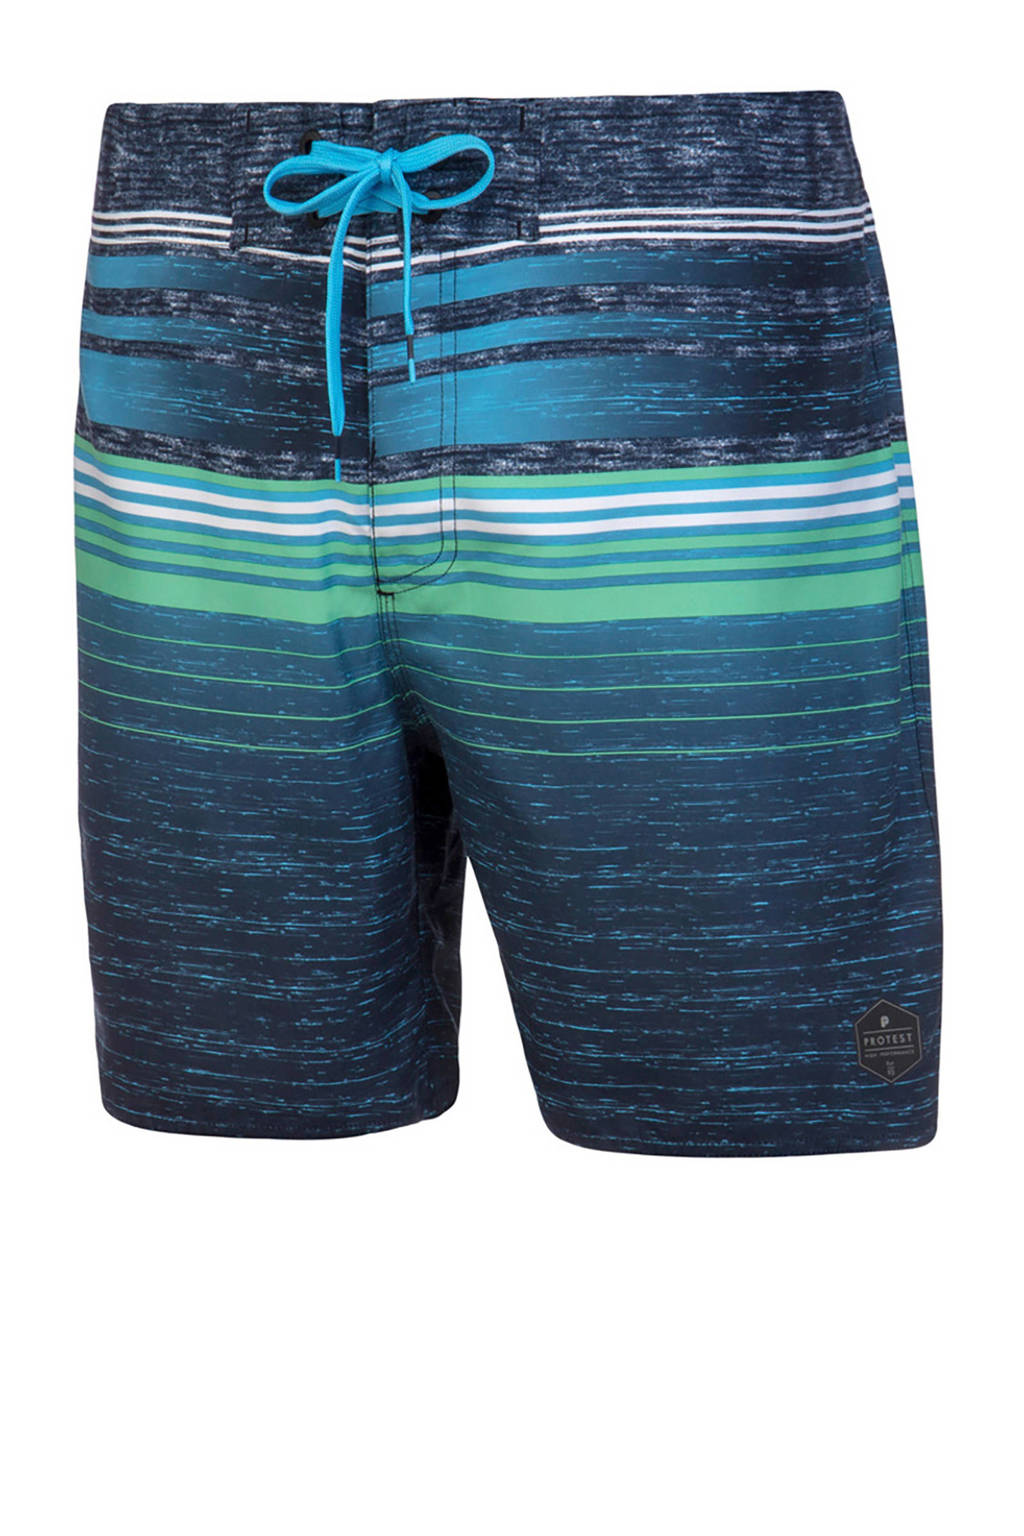 a15bab42f36cdf Protest boardshort Powell met all over print blauw, Blauw/wit/groen